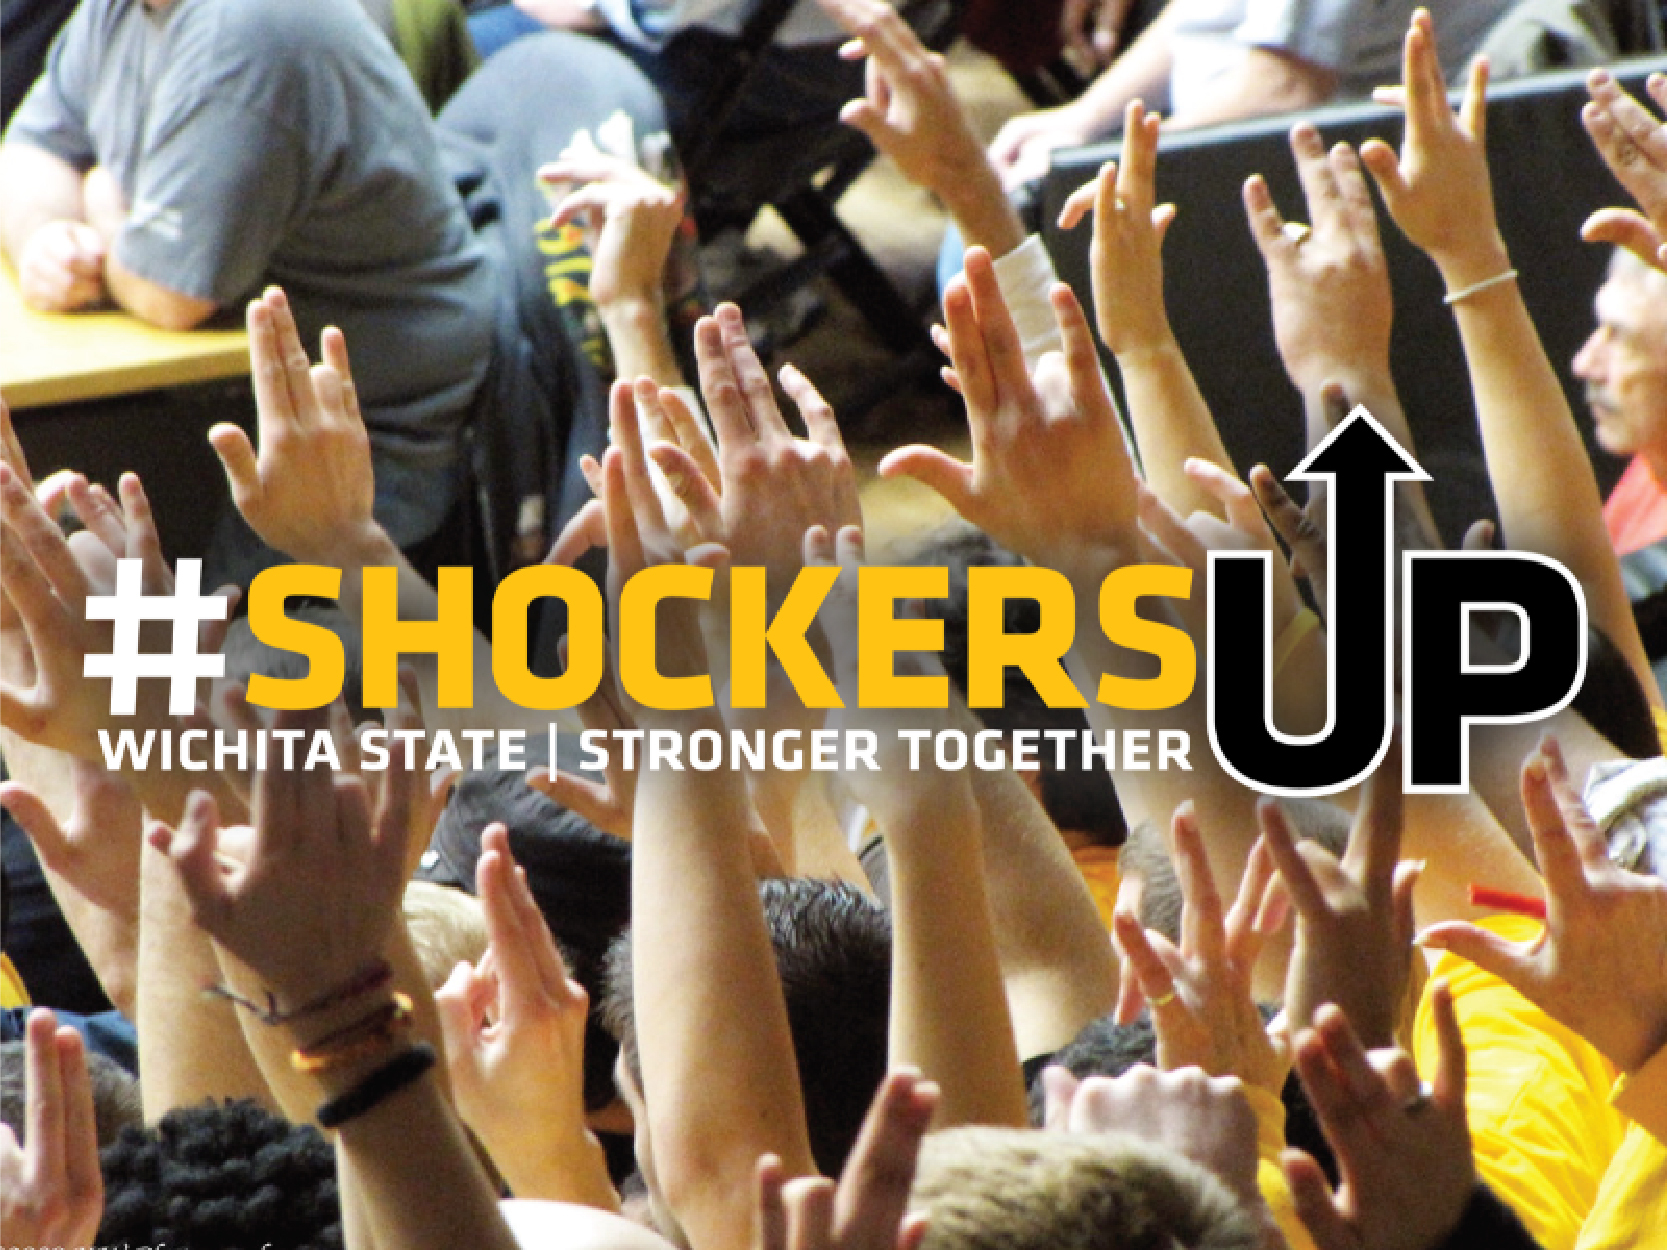 Shockers Up